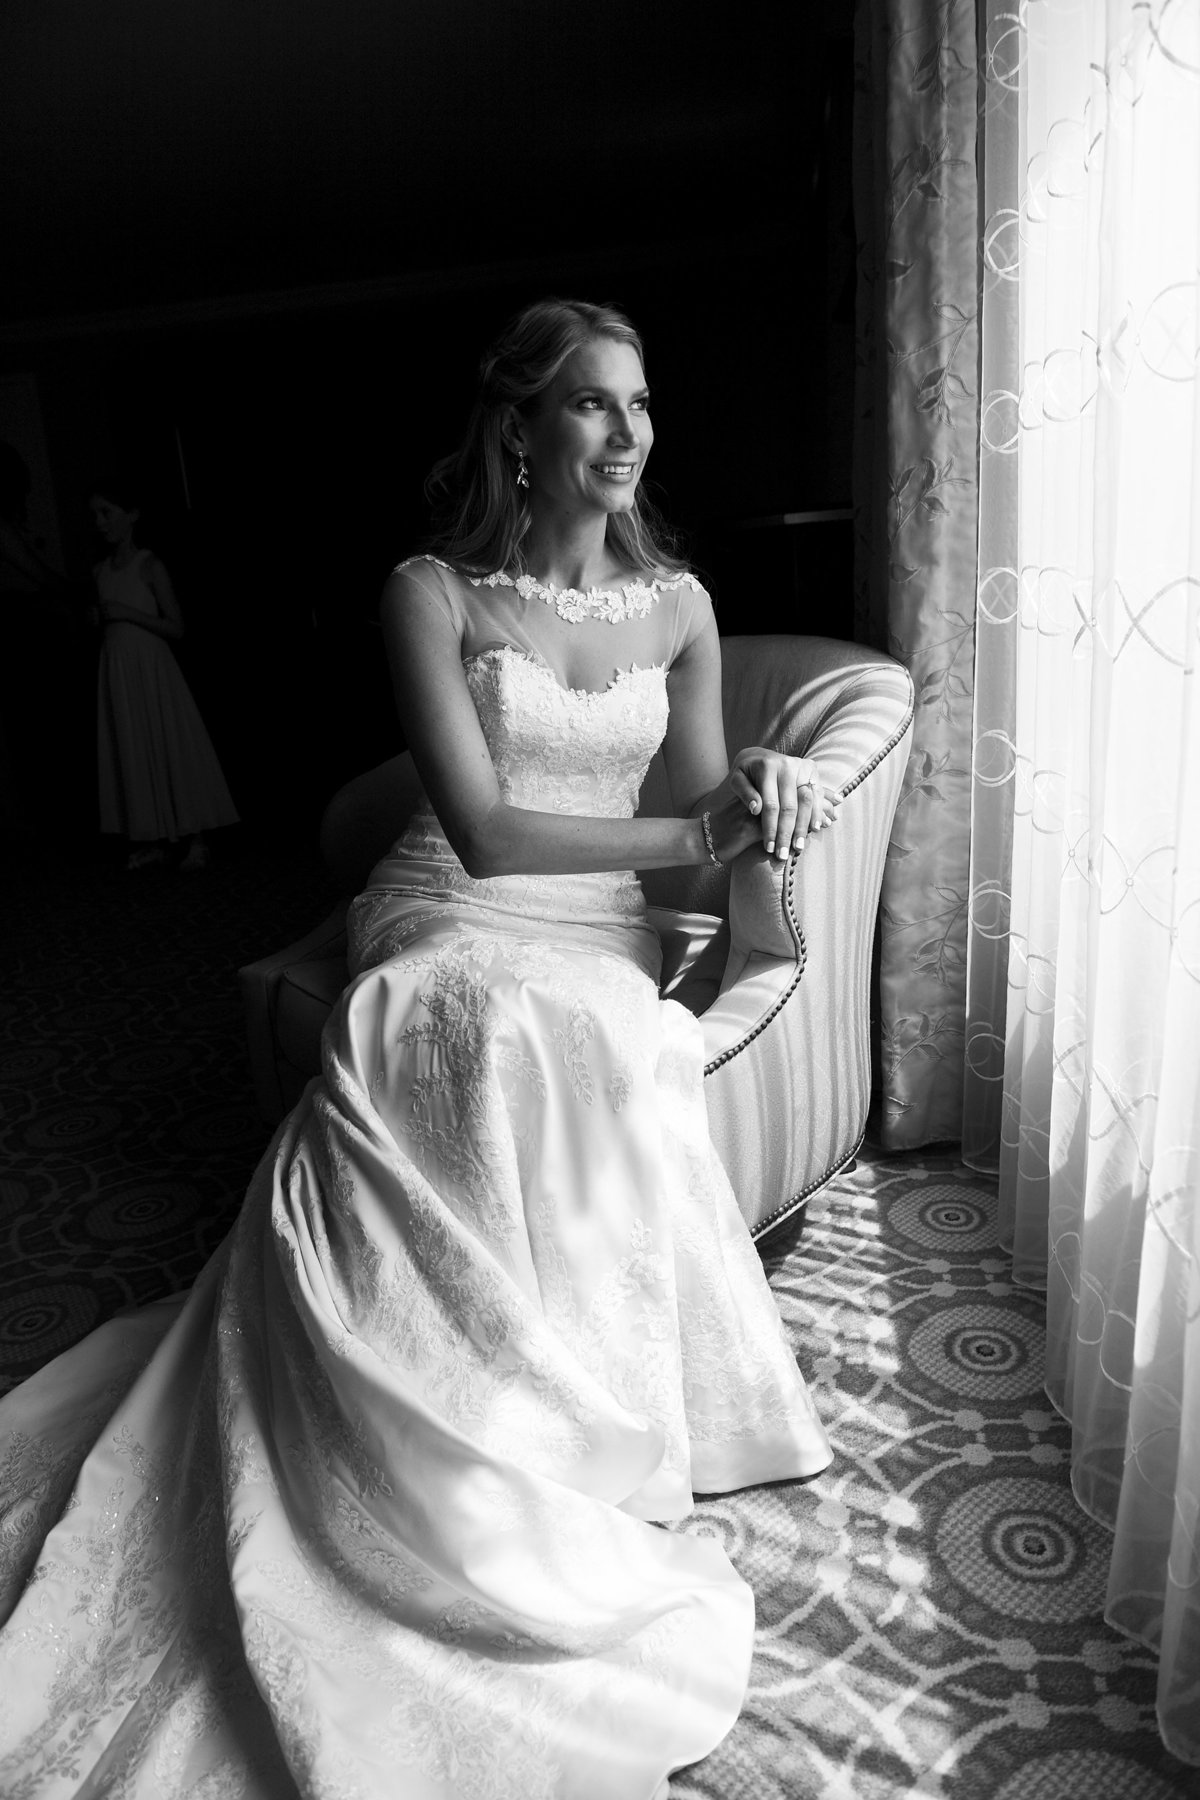 JW Marriot Wedding by Washington Dc Wedding Photographer, Erin Tetterton Photography